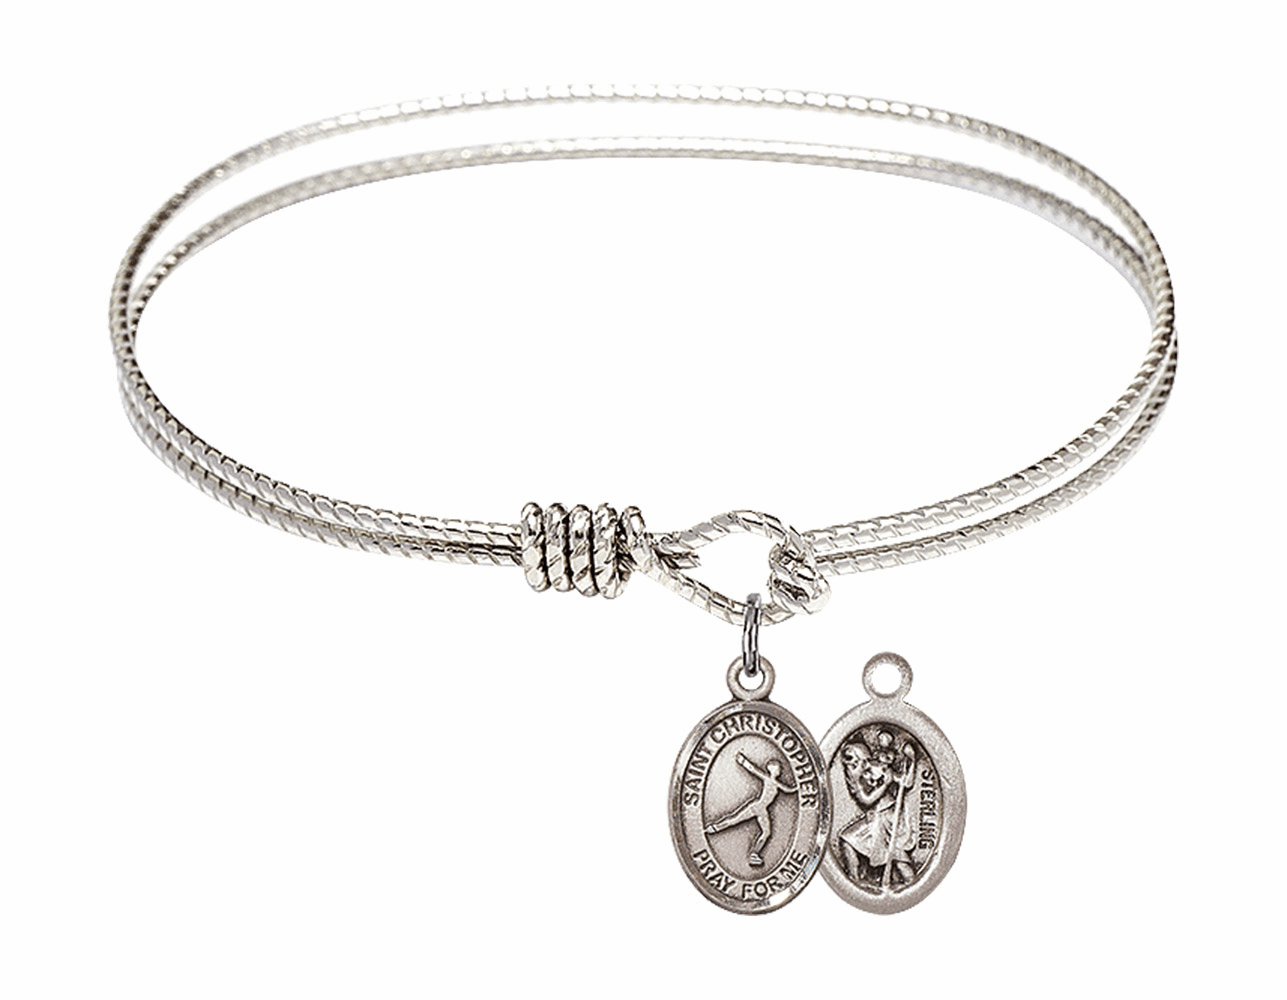 Twist Round Eye Hook St Christopher Figure Skating Bangle Charm Bracelet by Bliss